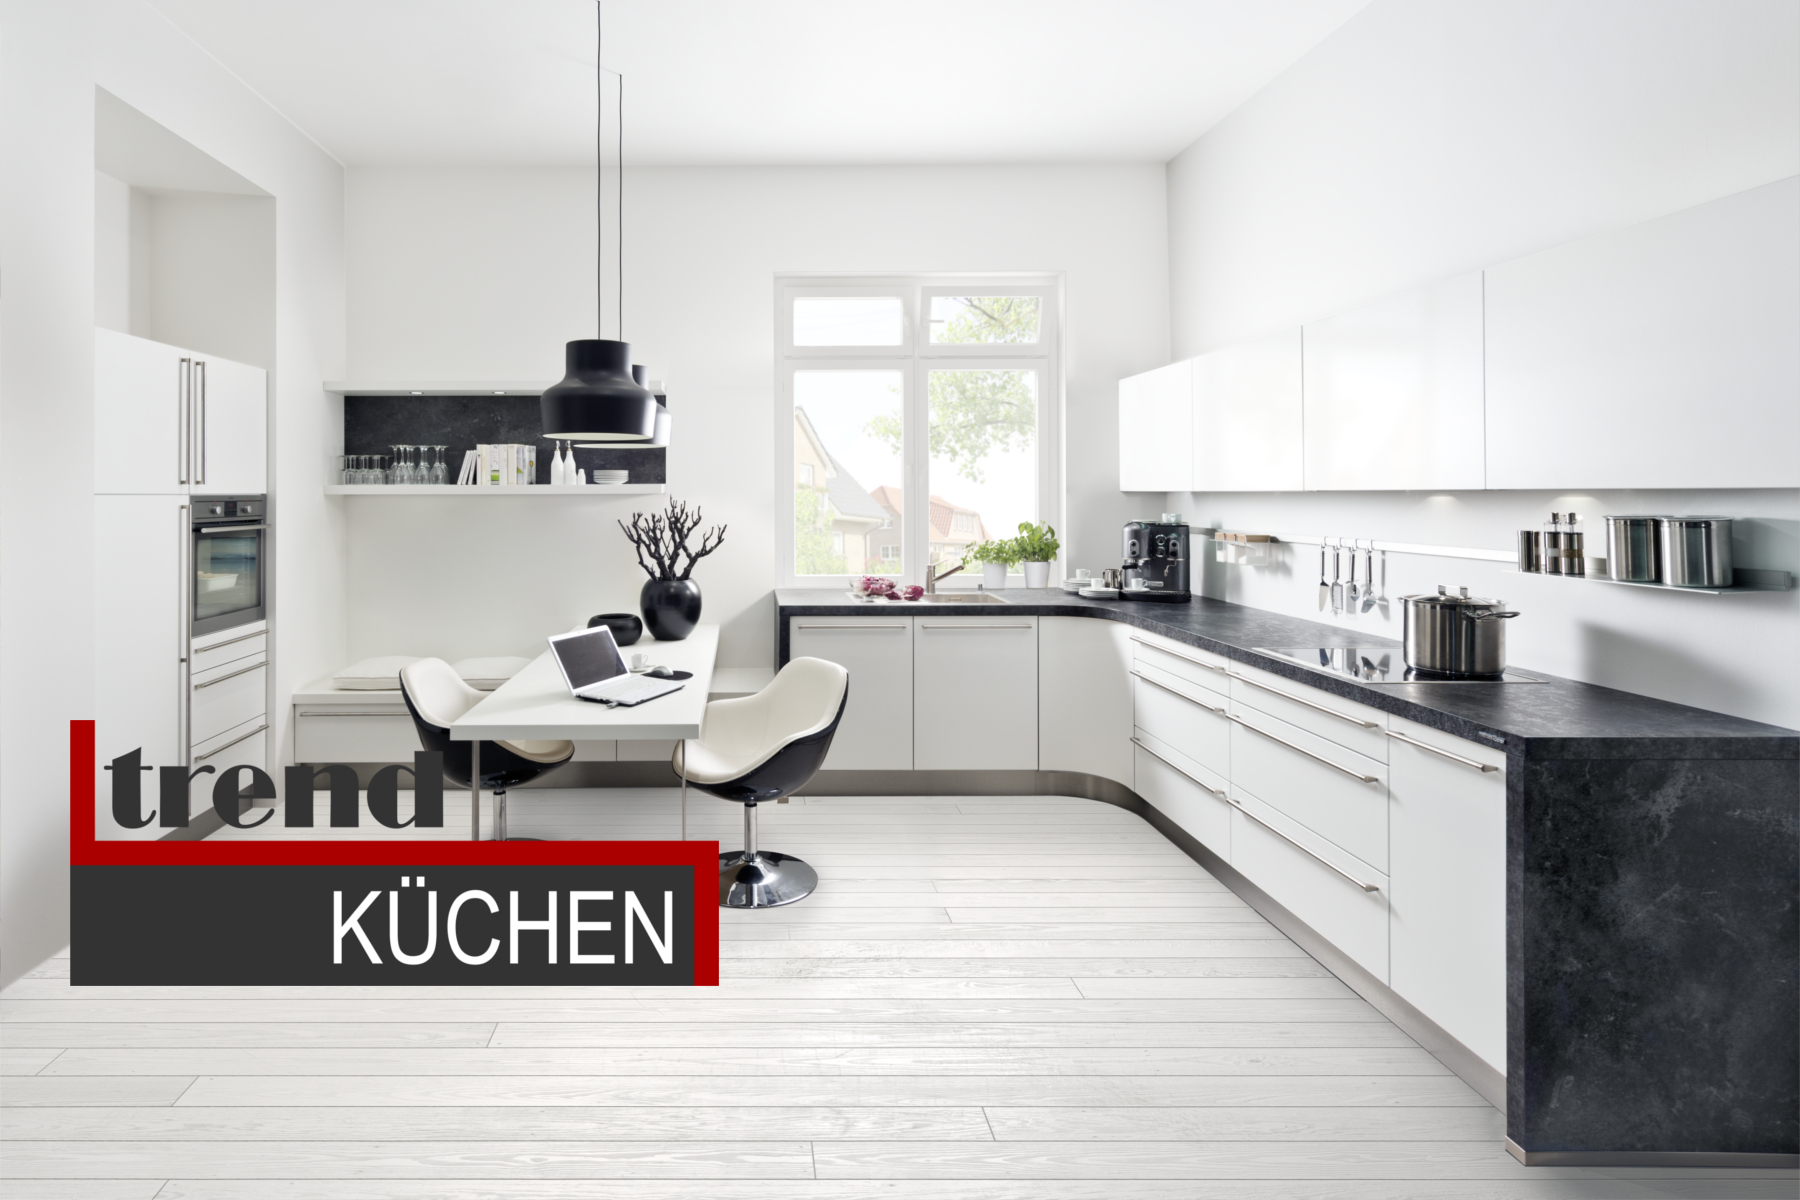 trend k chen og wien referenzen. Black Bedroom Furniture Sets. Home Design Ideas